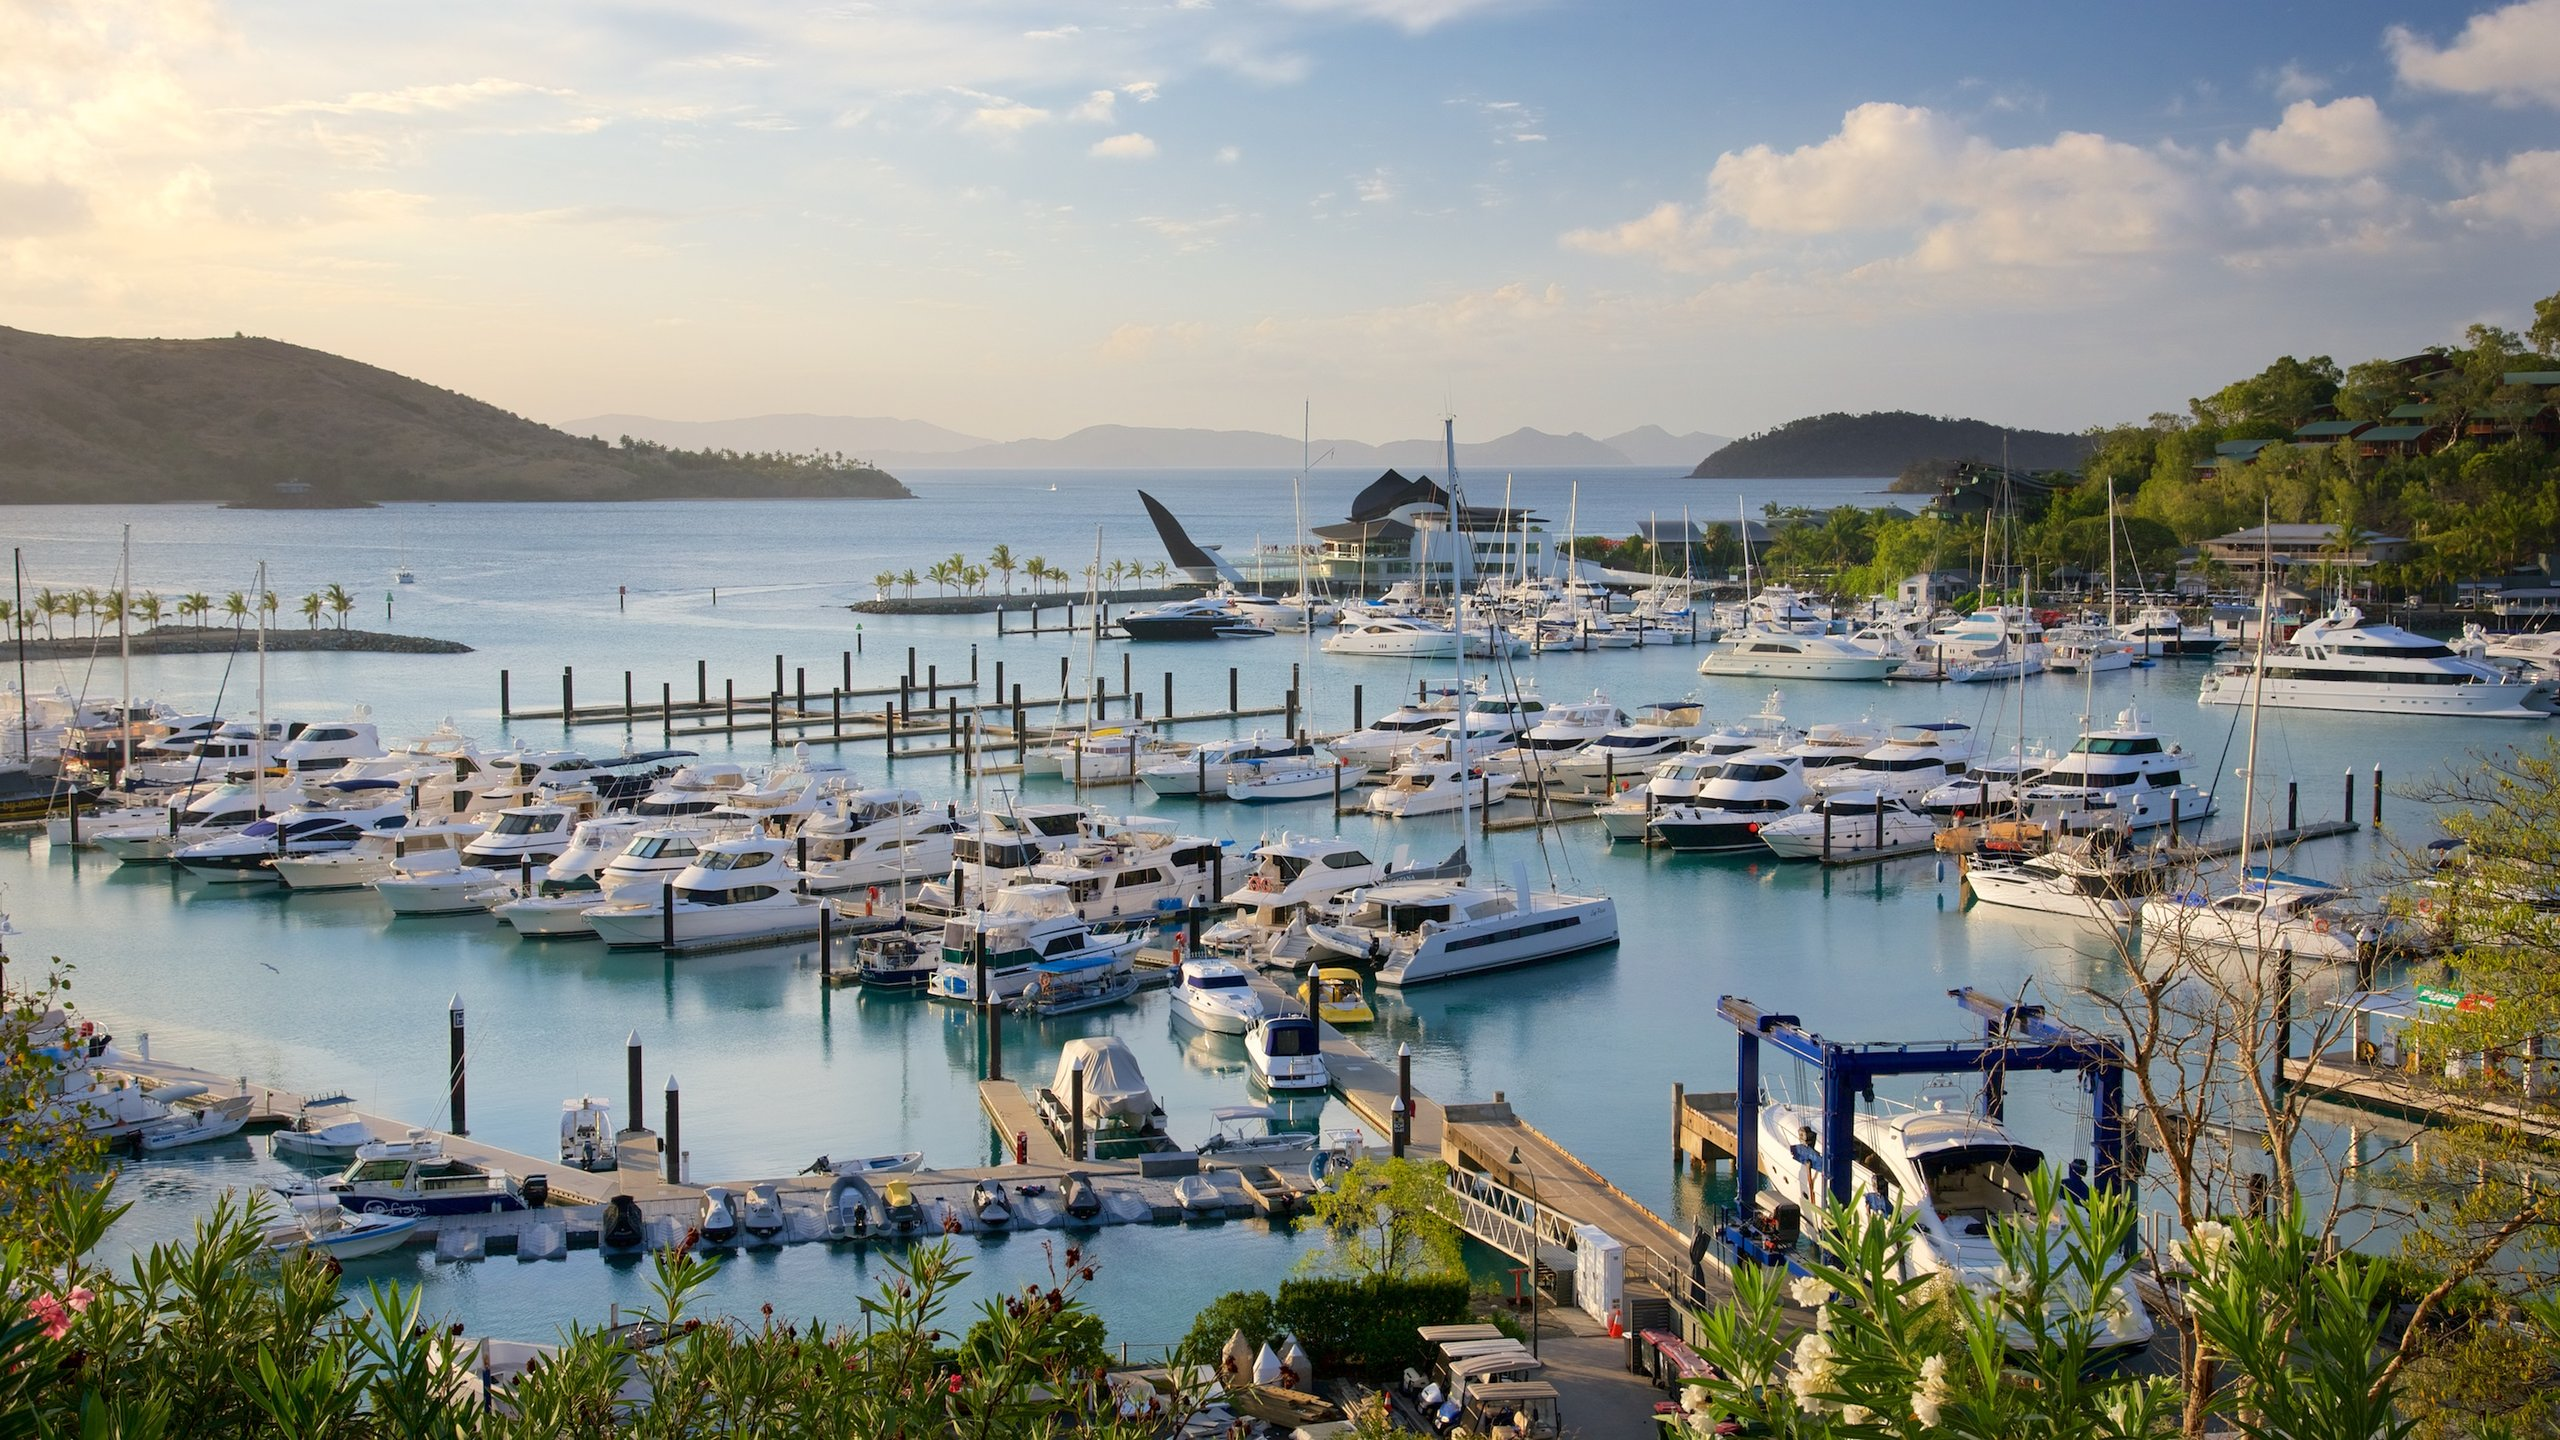 Cruise in for a visit or begin your boating adventure in the Great Barrier Reef from this world-class marina and make use of its fantastic facilities and great dining.